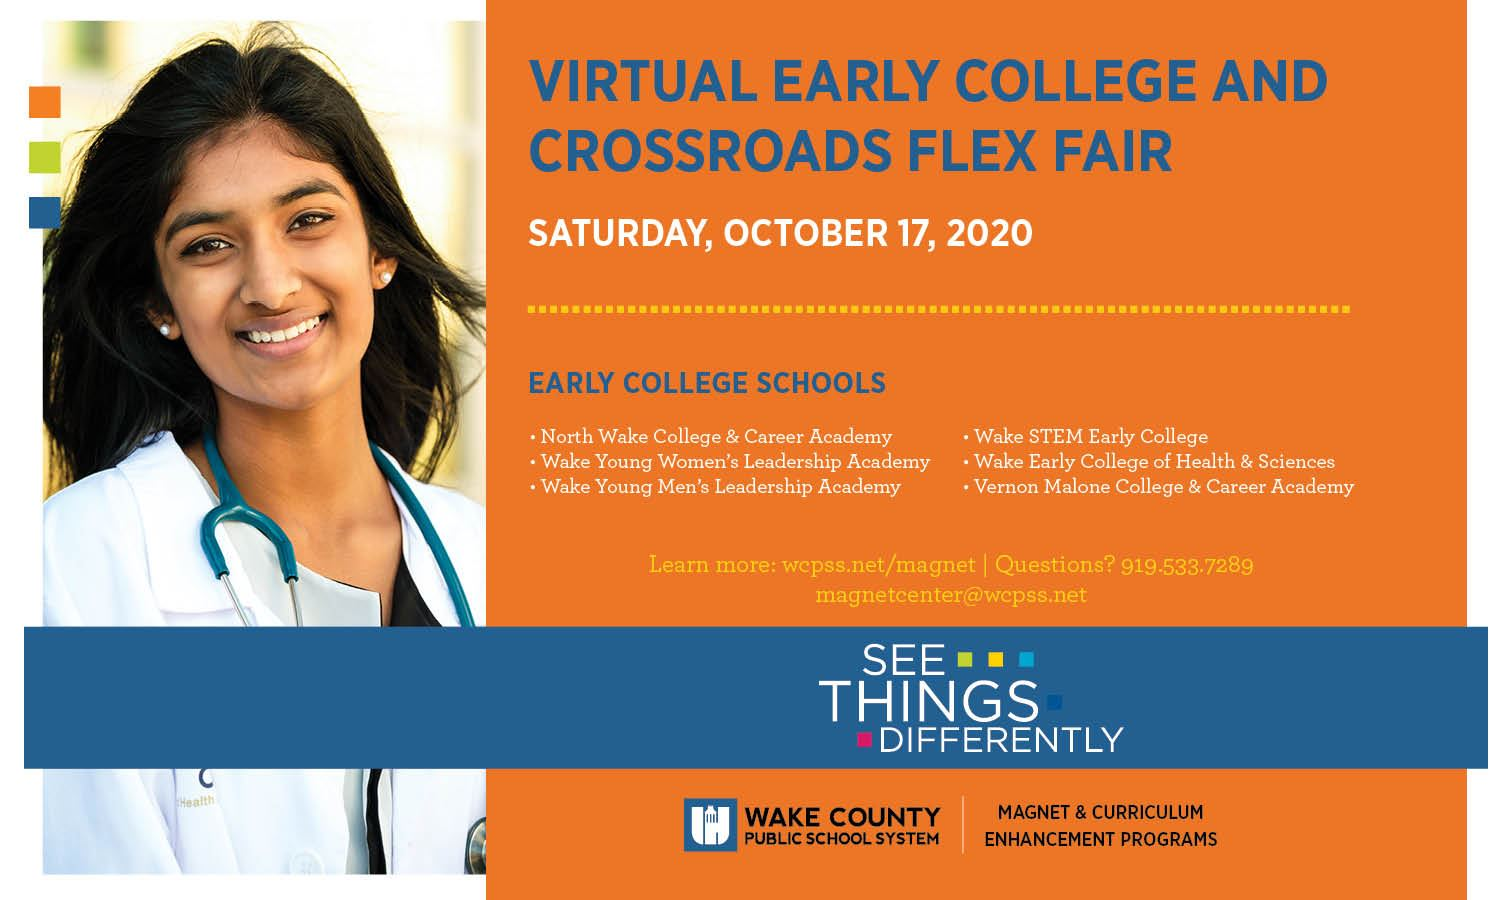 Virtual EARLY COLLEGE AND CROSSROADS FLEX FAIR